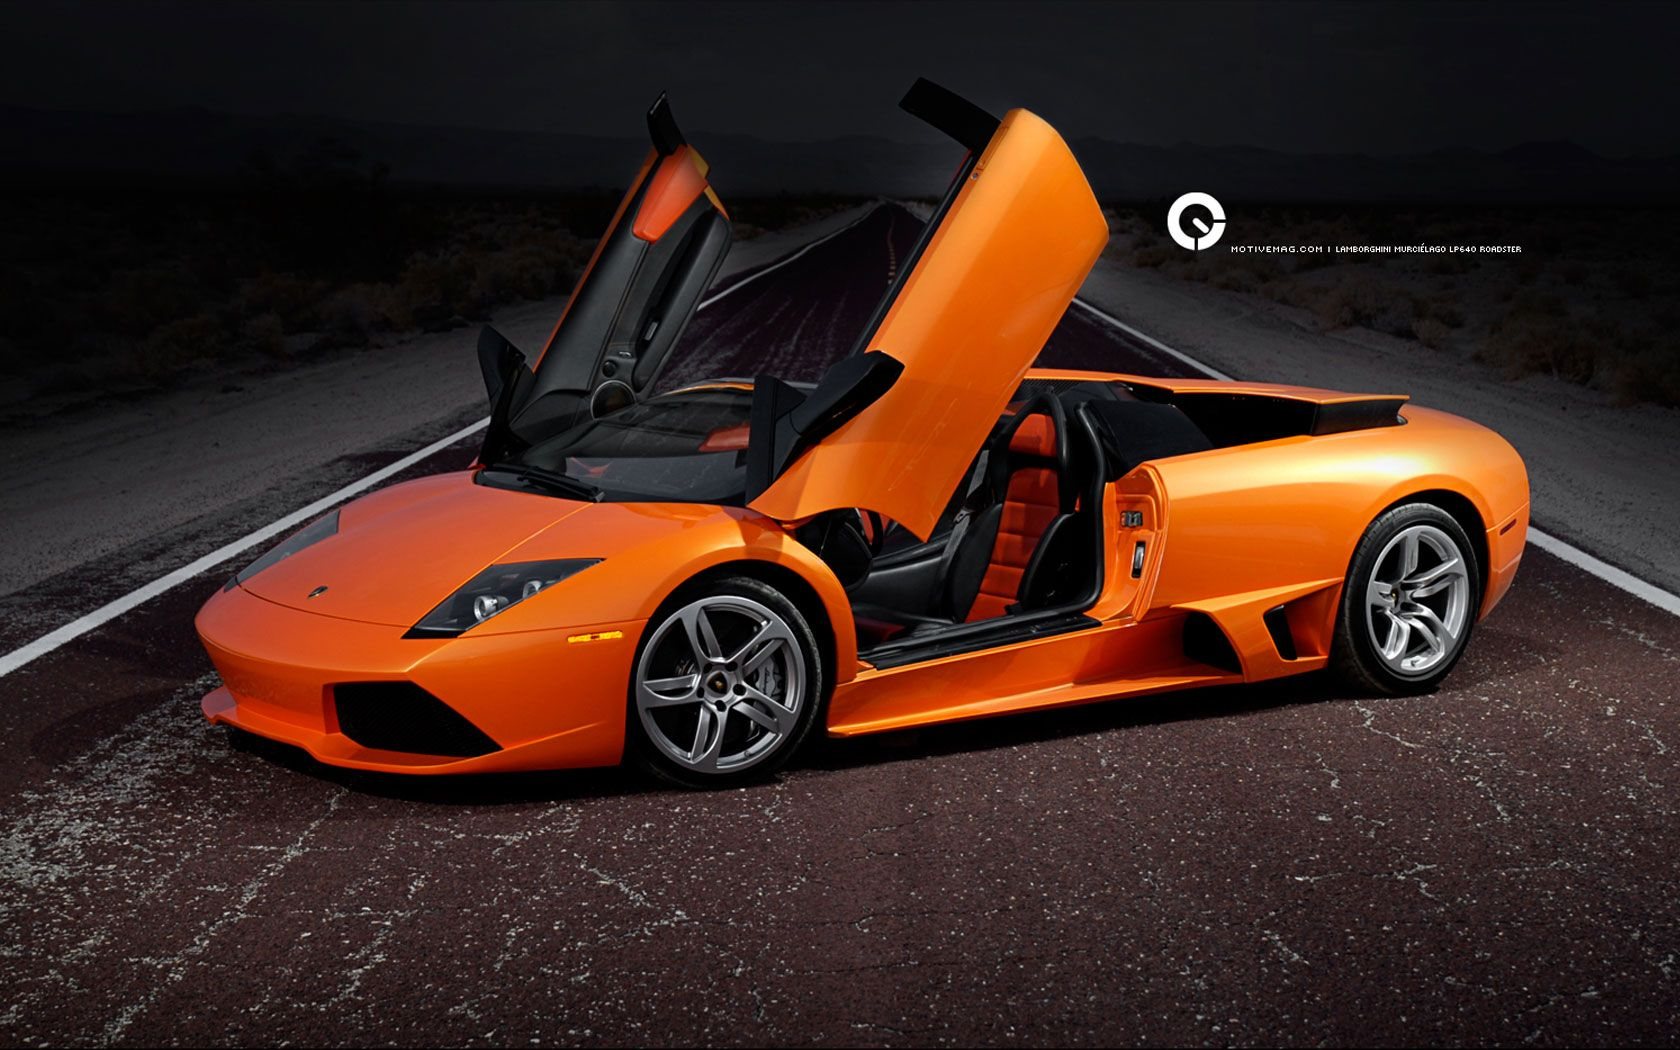 Lamborghini Murcielago, Not This Color But Love This Car